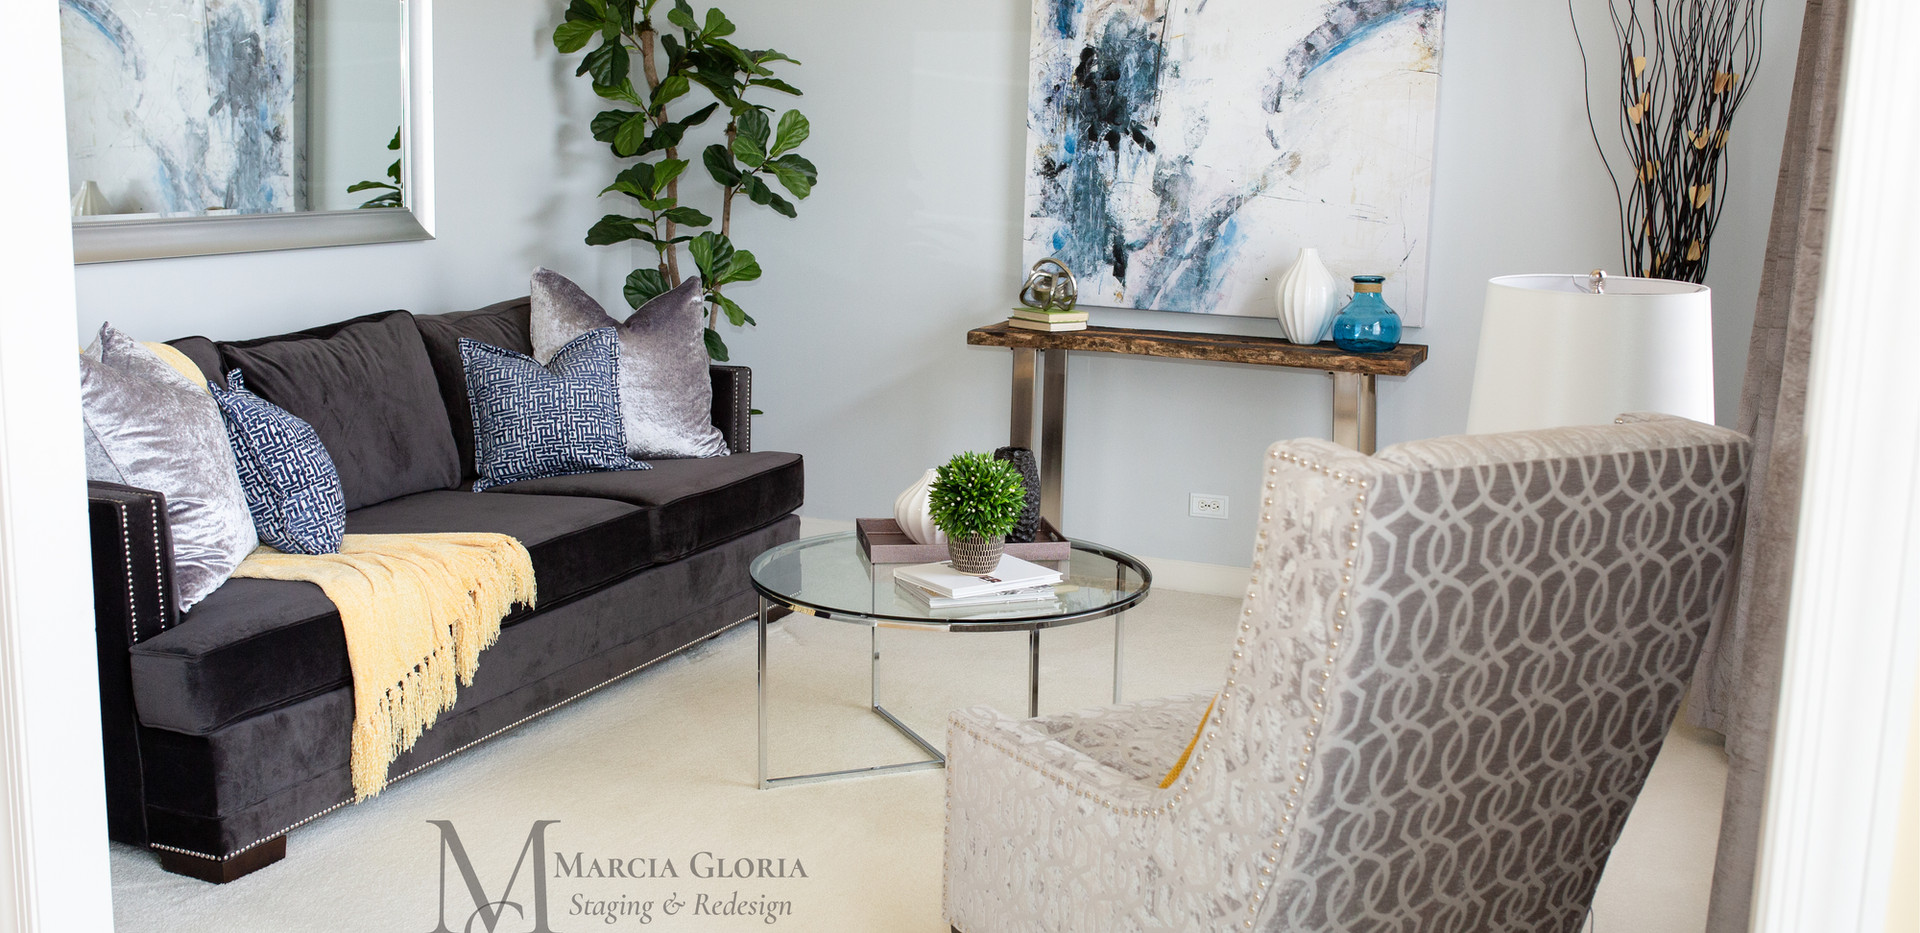 Marcia Gloria Staging & Redesign - Living Room